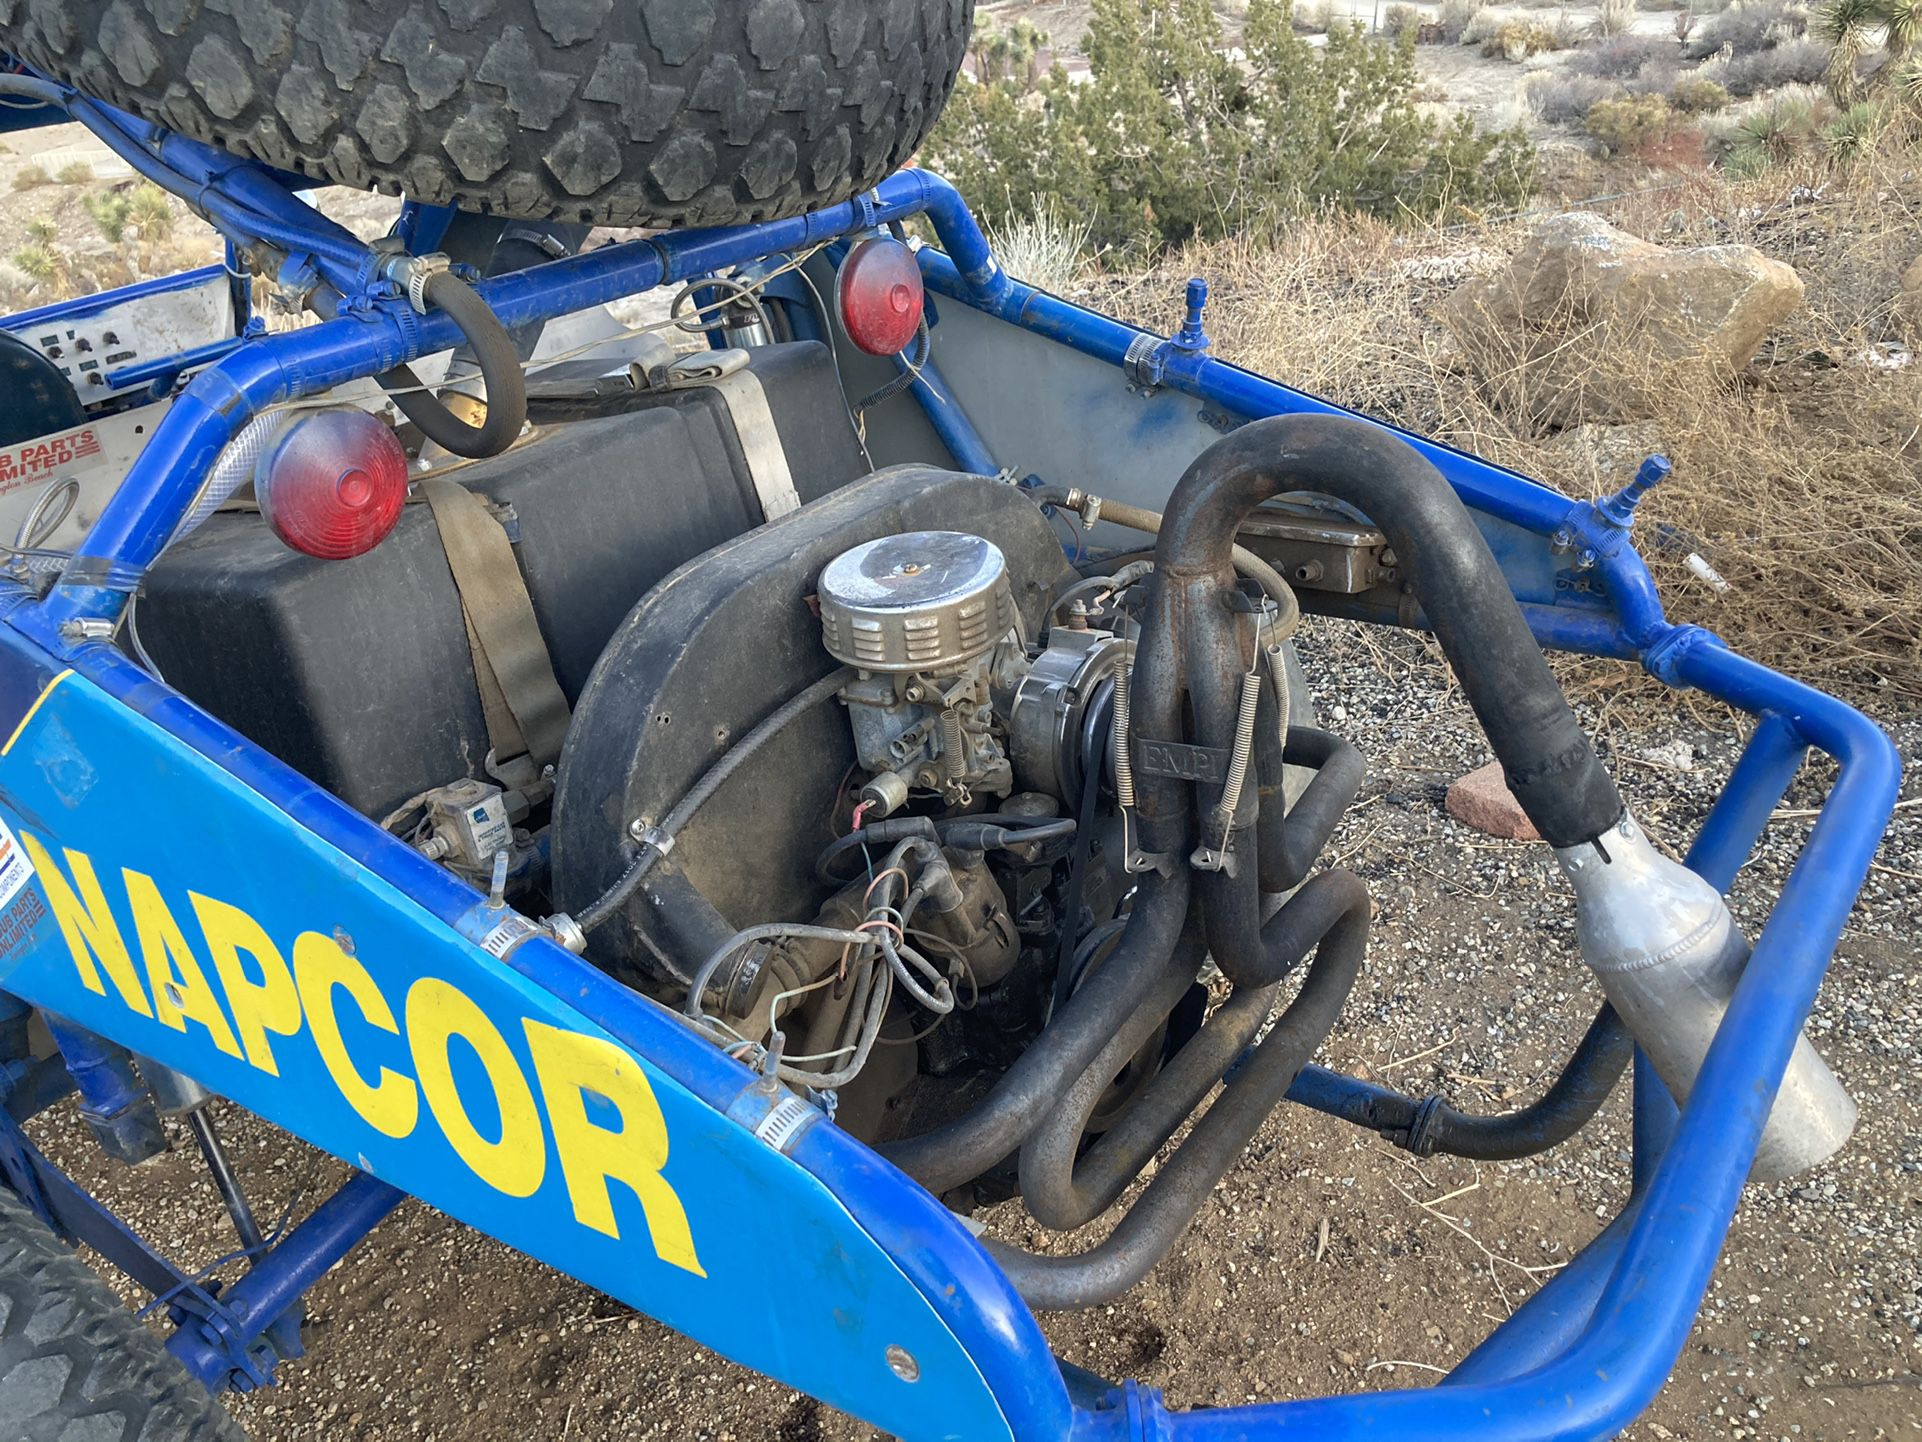 1600 Cc VW Engine Two Seater Buy As Is